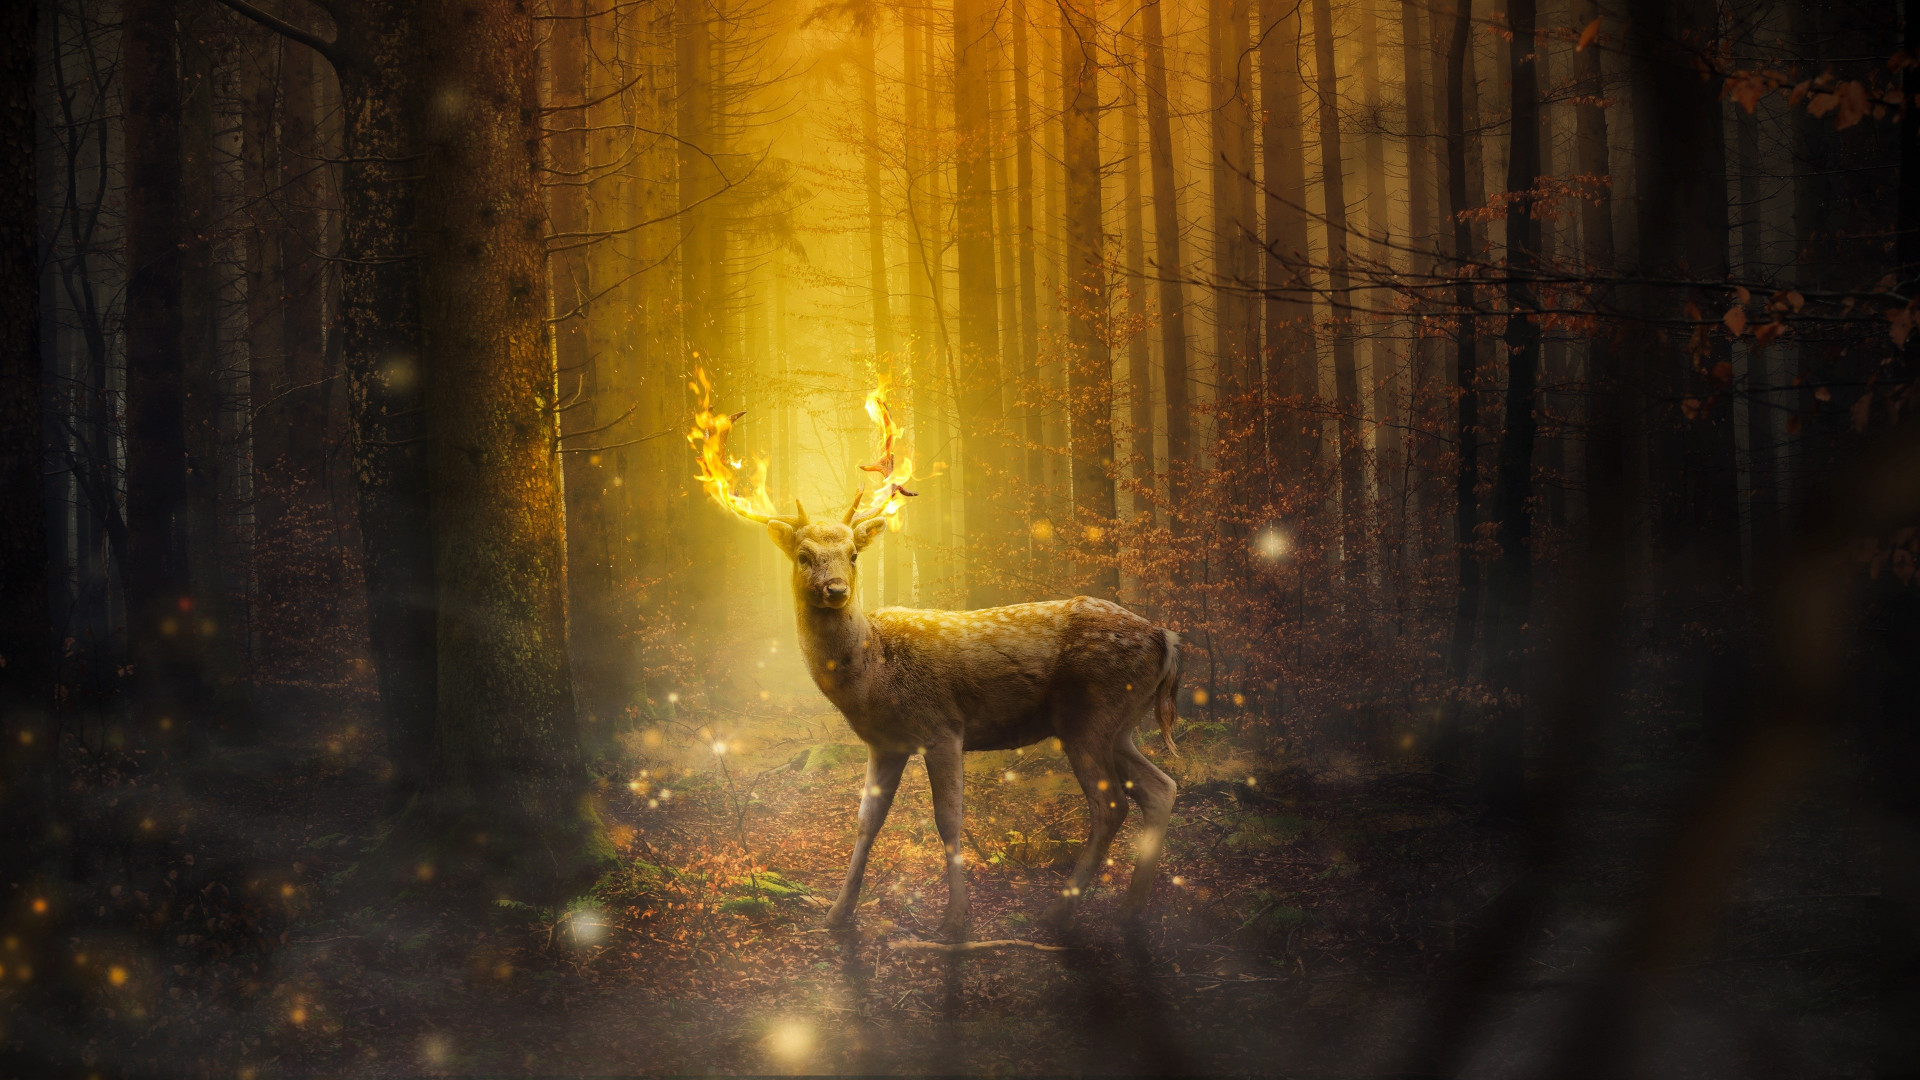 Fantasy, stag, horns, flames wallpaper 1920x1080